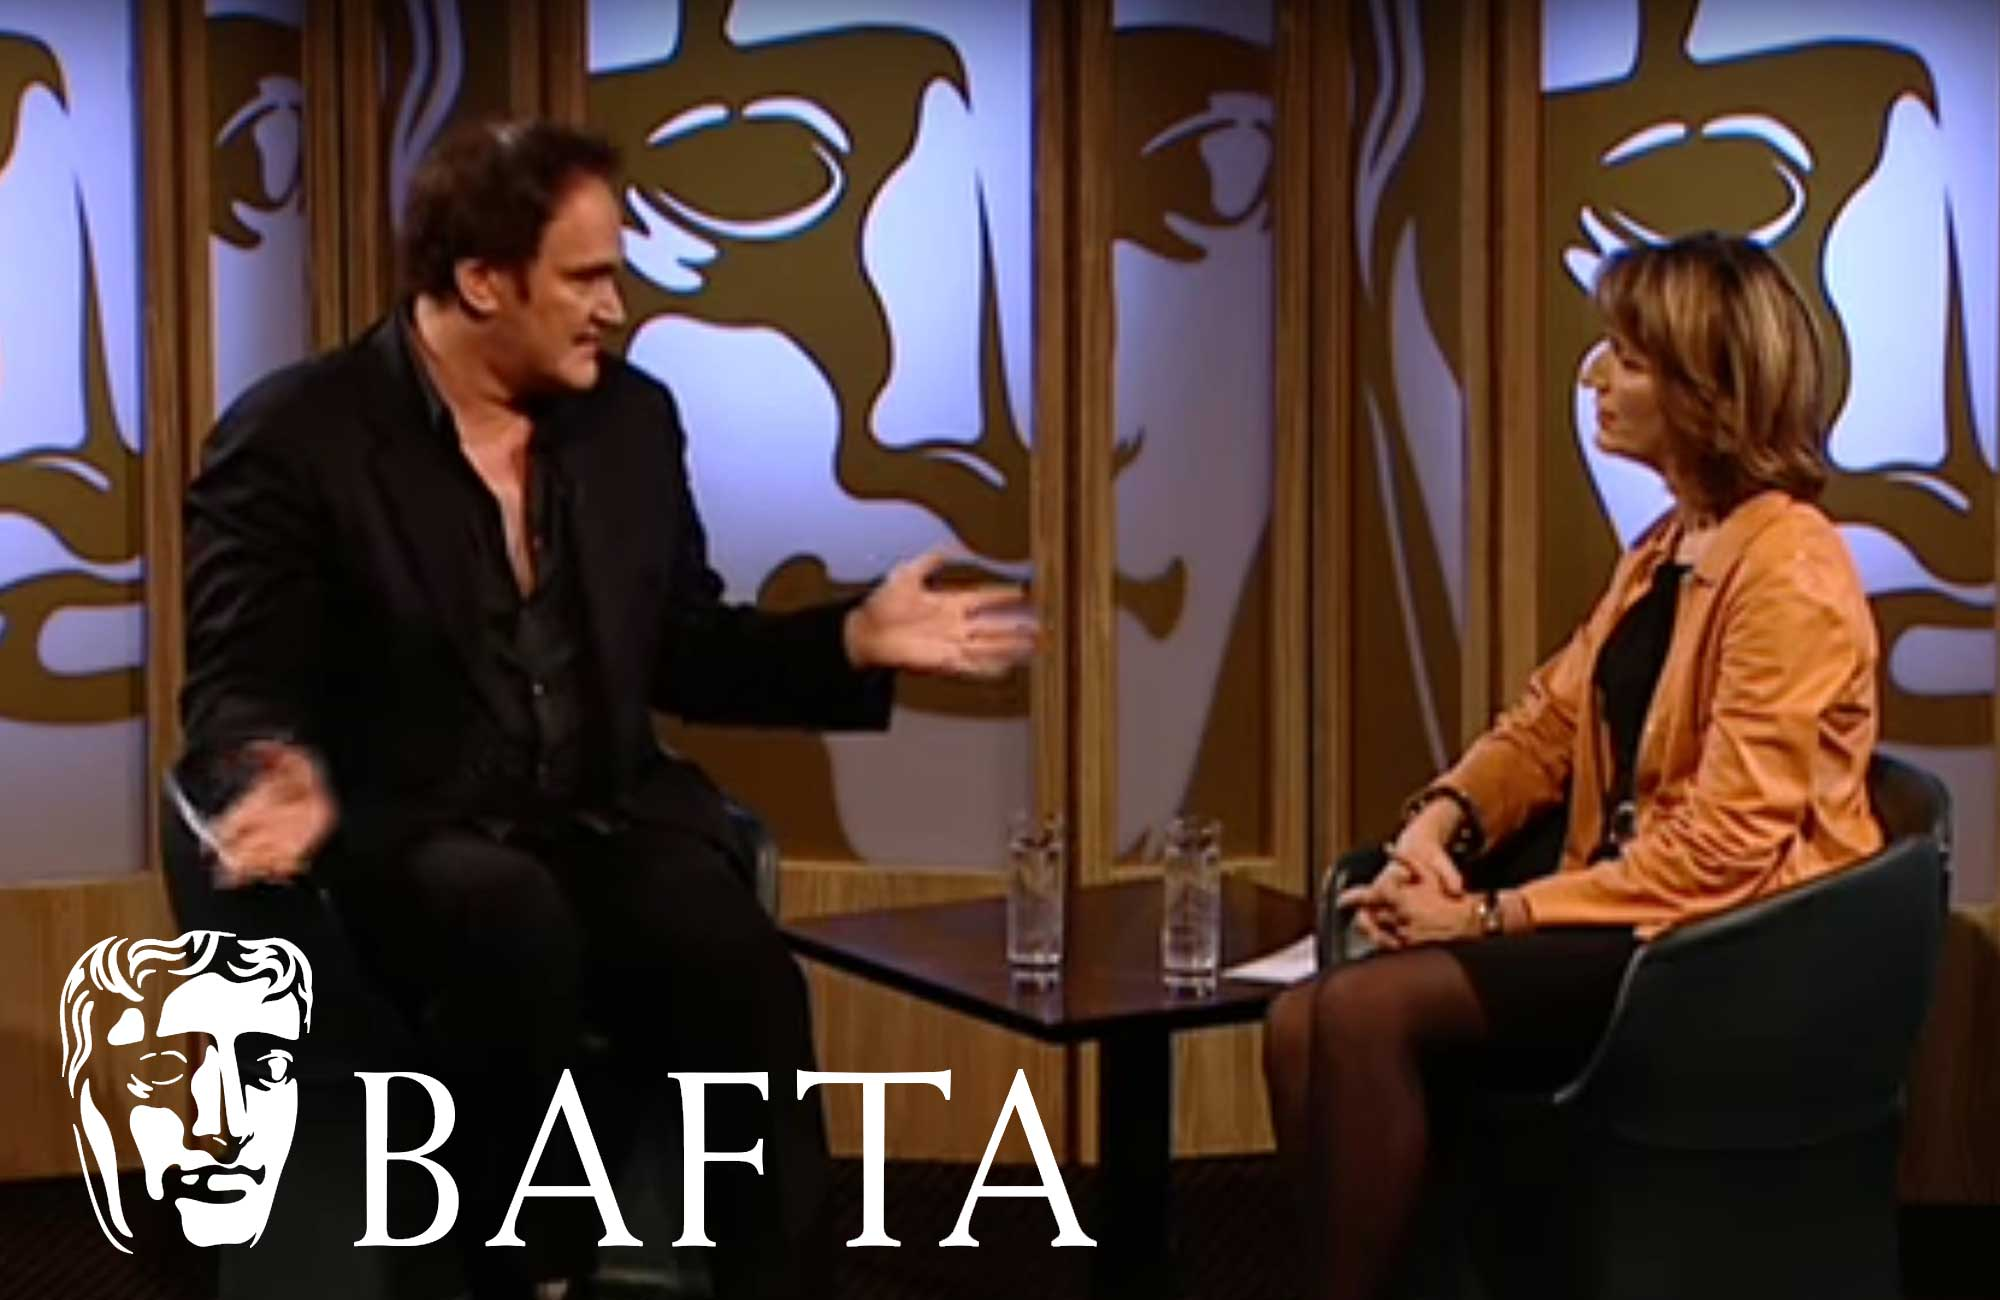 BAFTA: A Life in Pictures